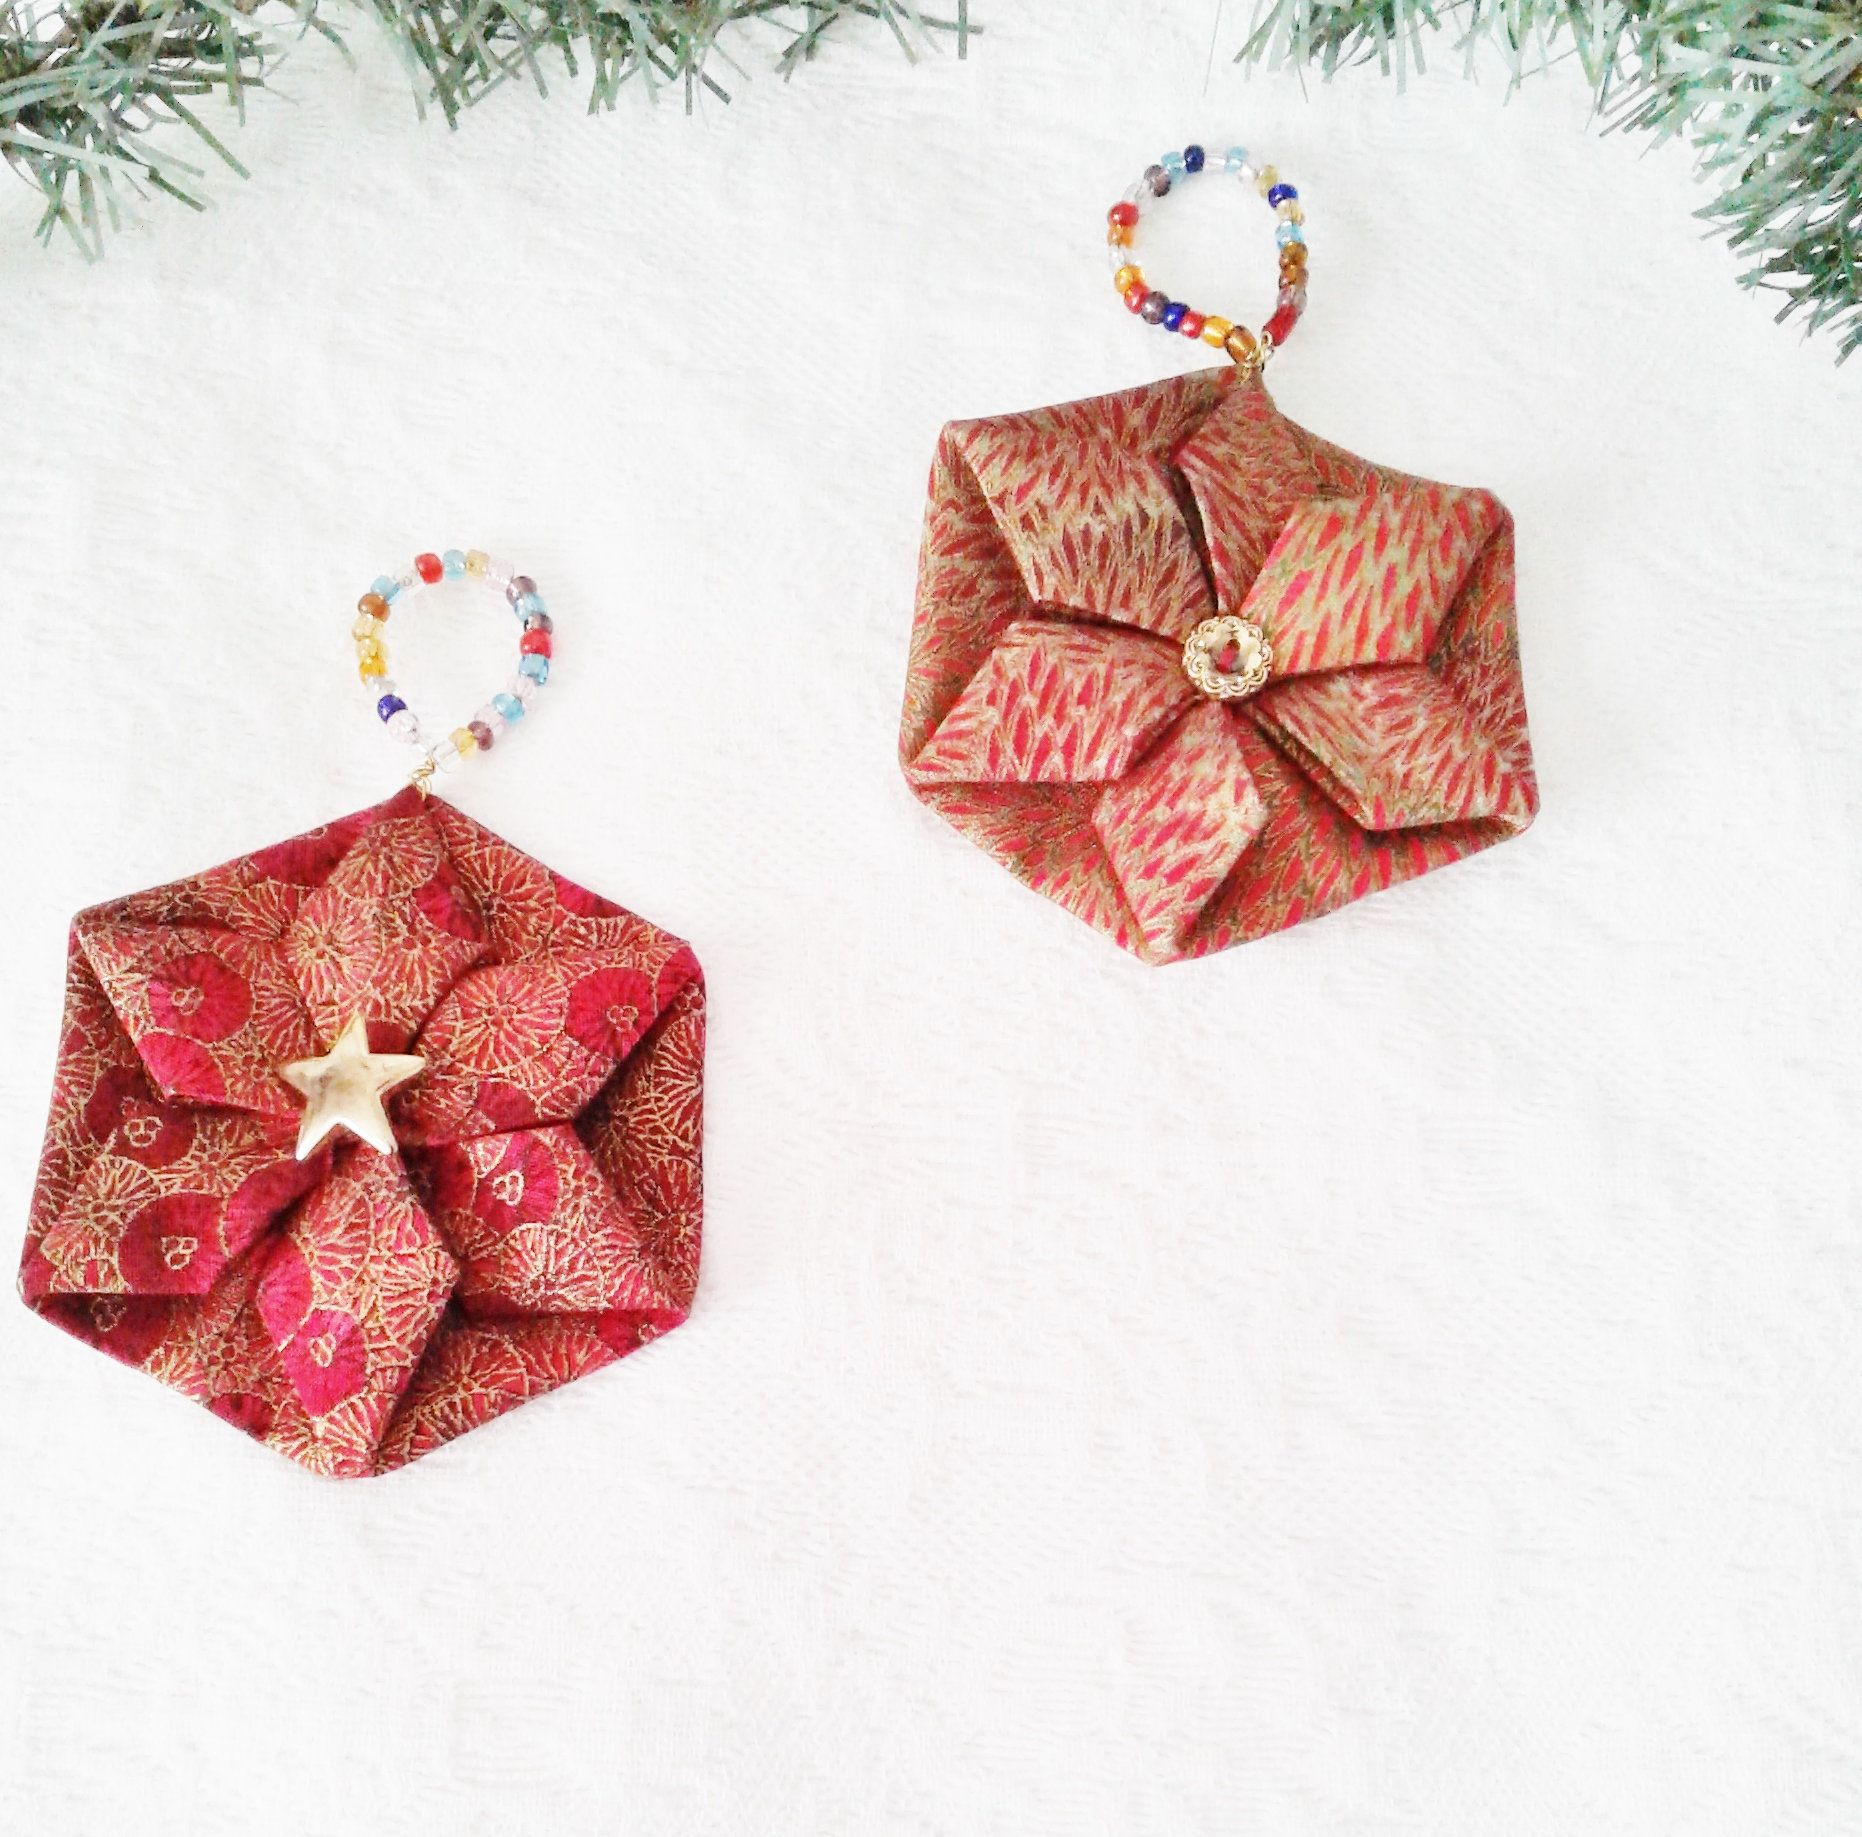 Holiday Ornaments Christmas Home Decor Tree Ornaments Set Of Etsy Folded Fabric Ornaments Handmade Tree Ornaments Fabric Ornaments